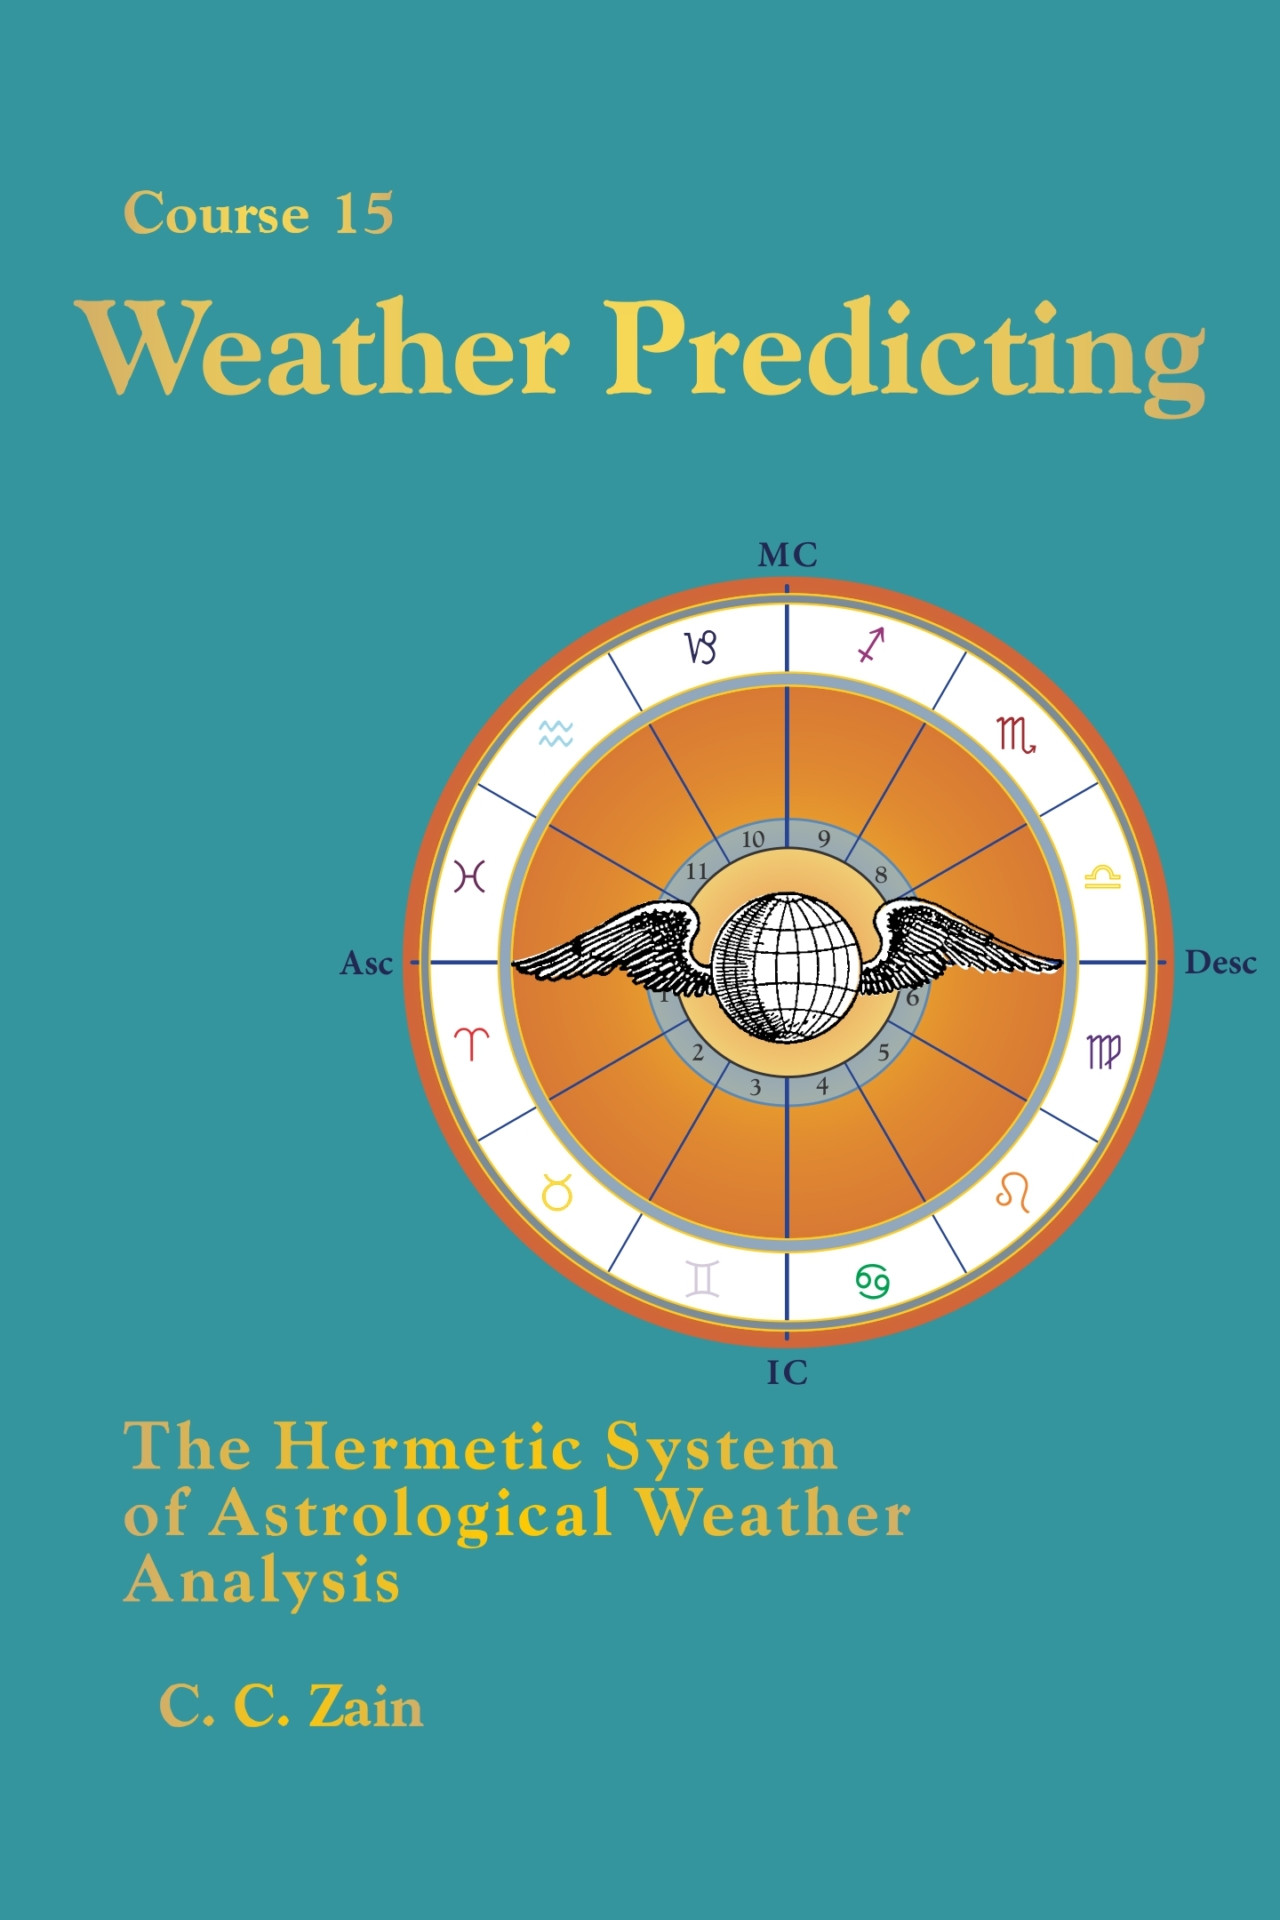 https://study.academyofhermeticarts.org/wp-content/uploads/2020/04/15_Weather_Predicting_eBook_Cover-1280x1920.jpg